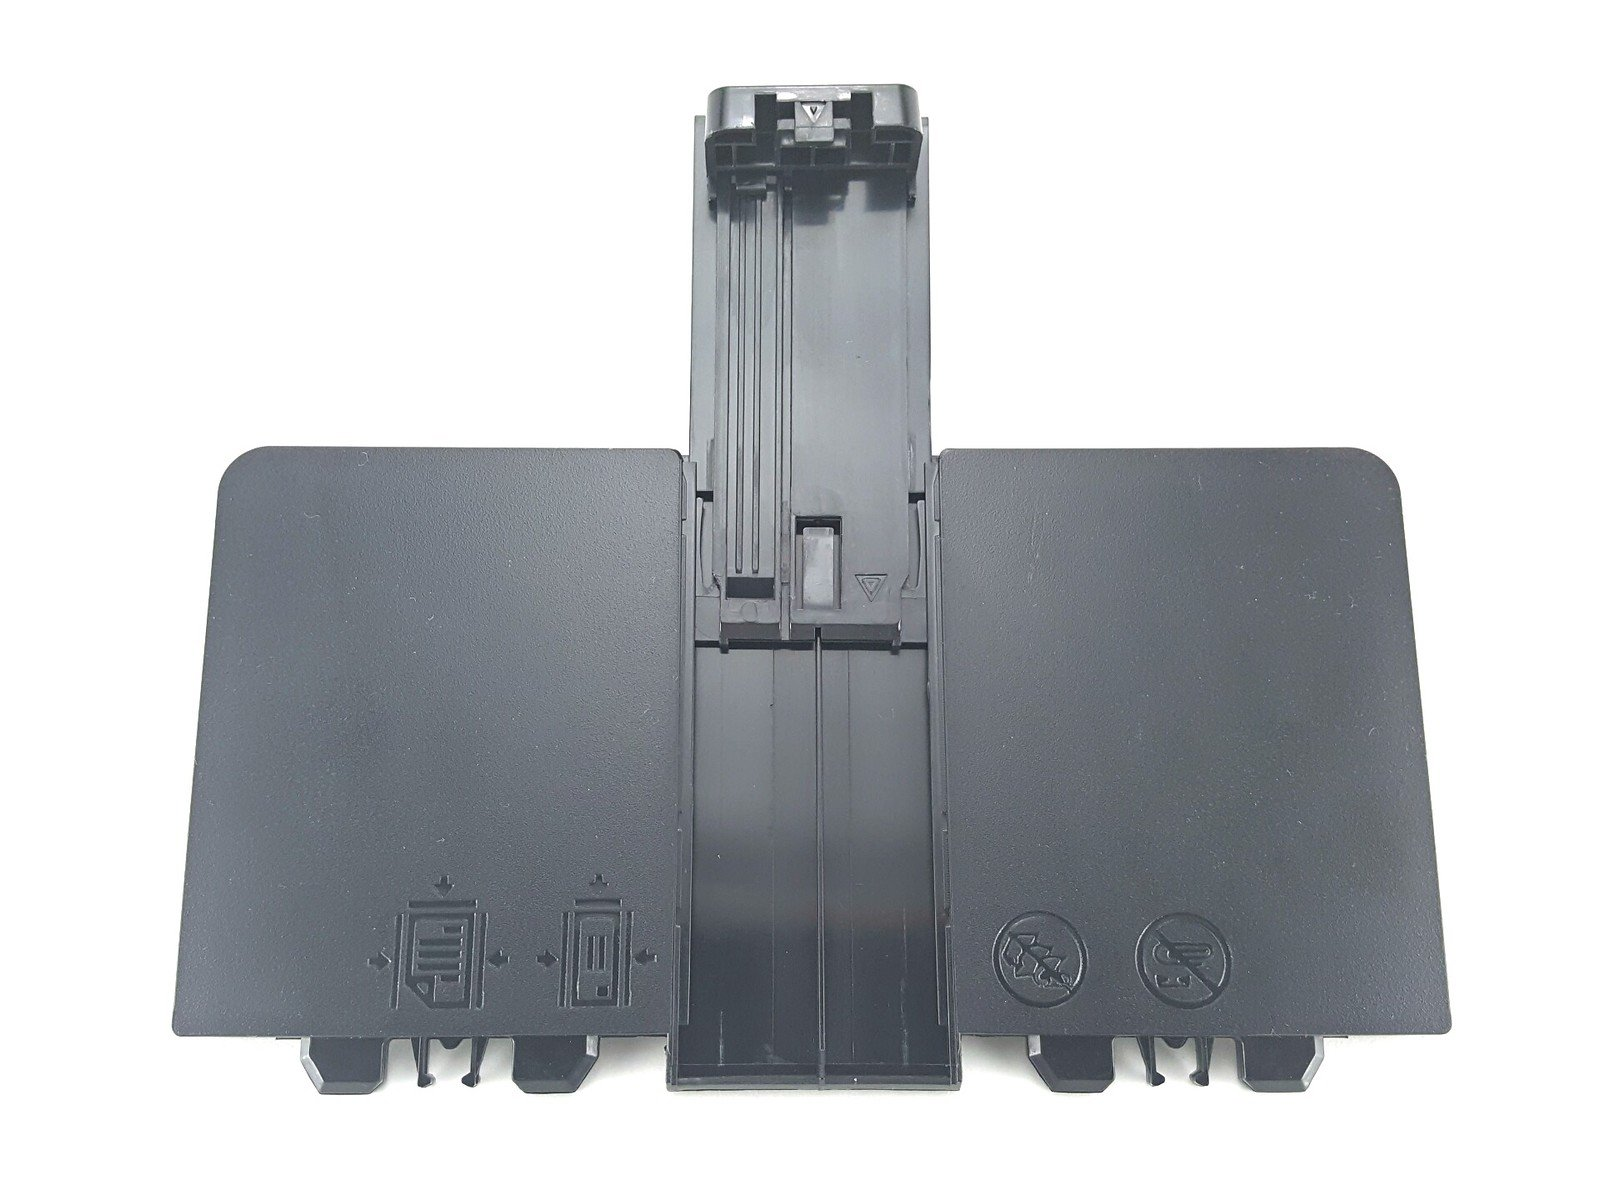 RM1-9958-000CN Paper Pick-Up Tray Assy m125a m125nw m126nw m125r m125rnw m127fn m127fw m128fp by Quality Parts Co.